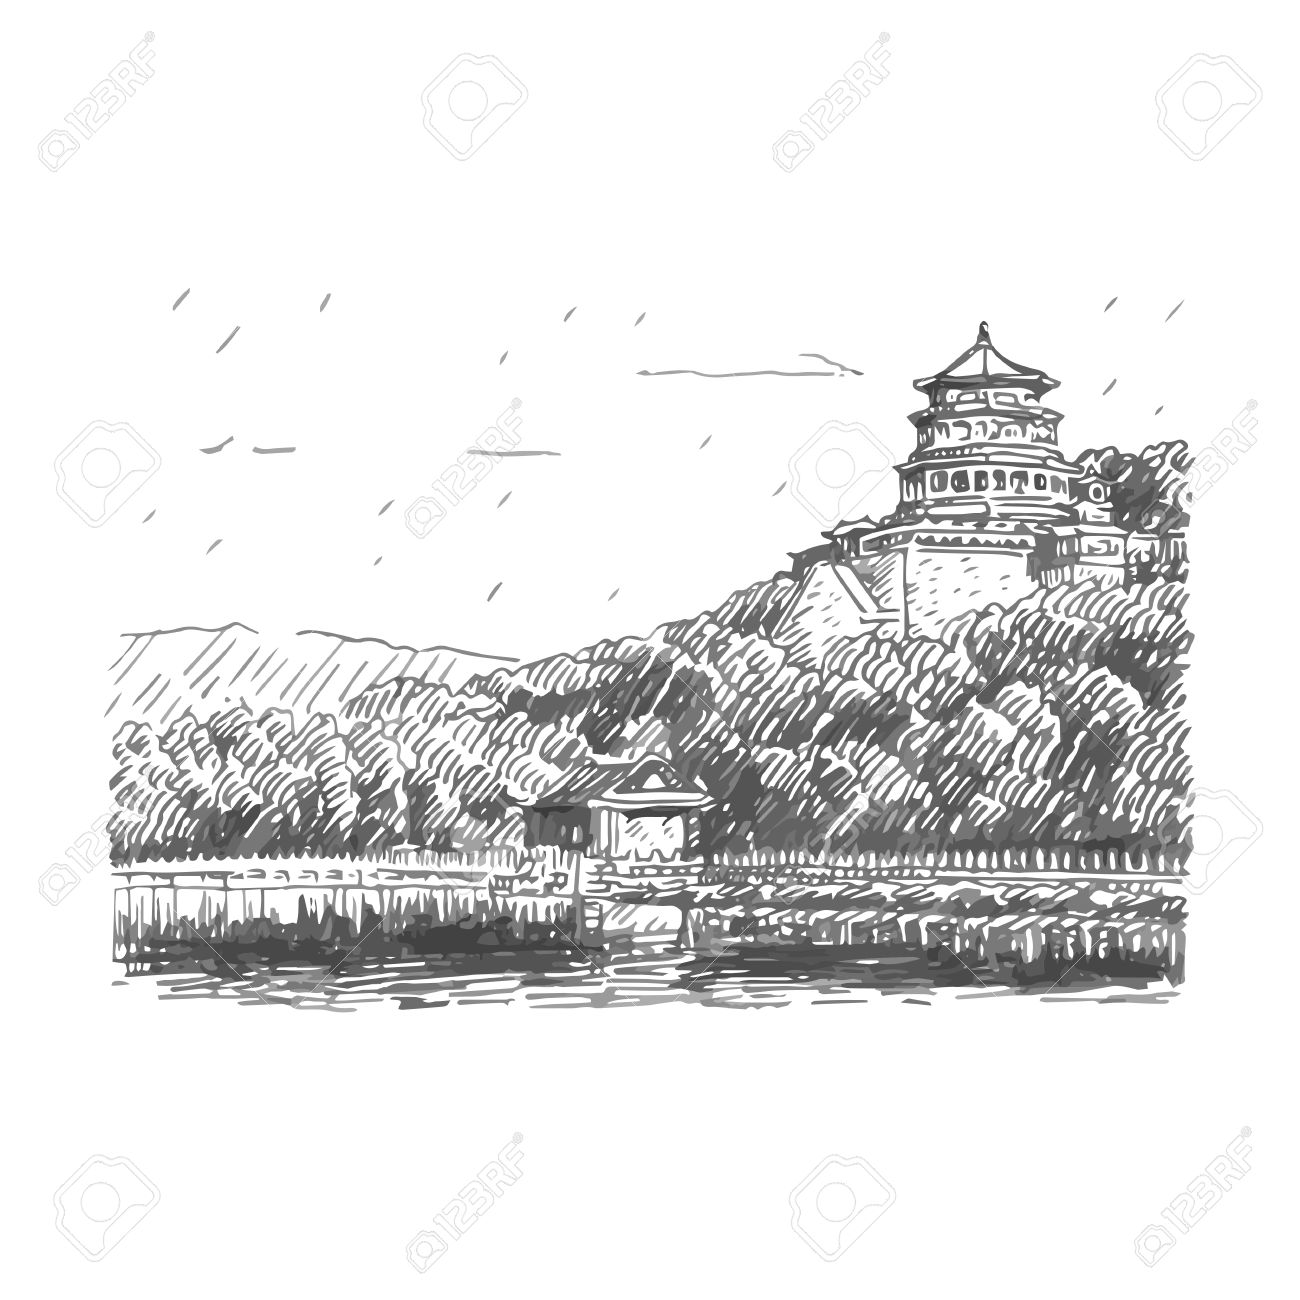 The summer palace scenery beijing china vector freehand pencil sketch stock vector